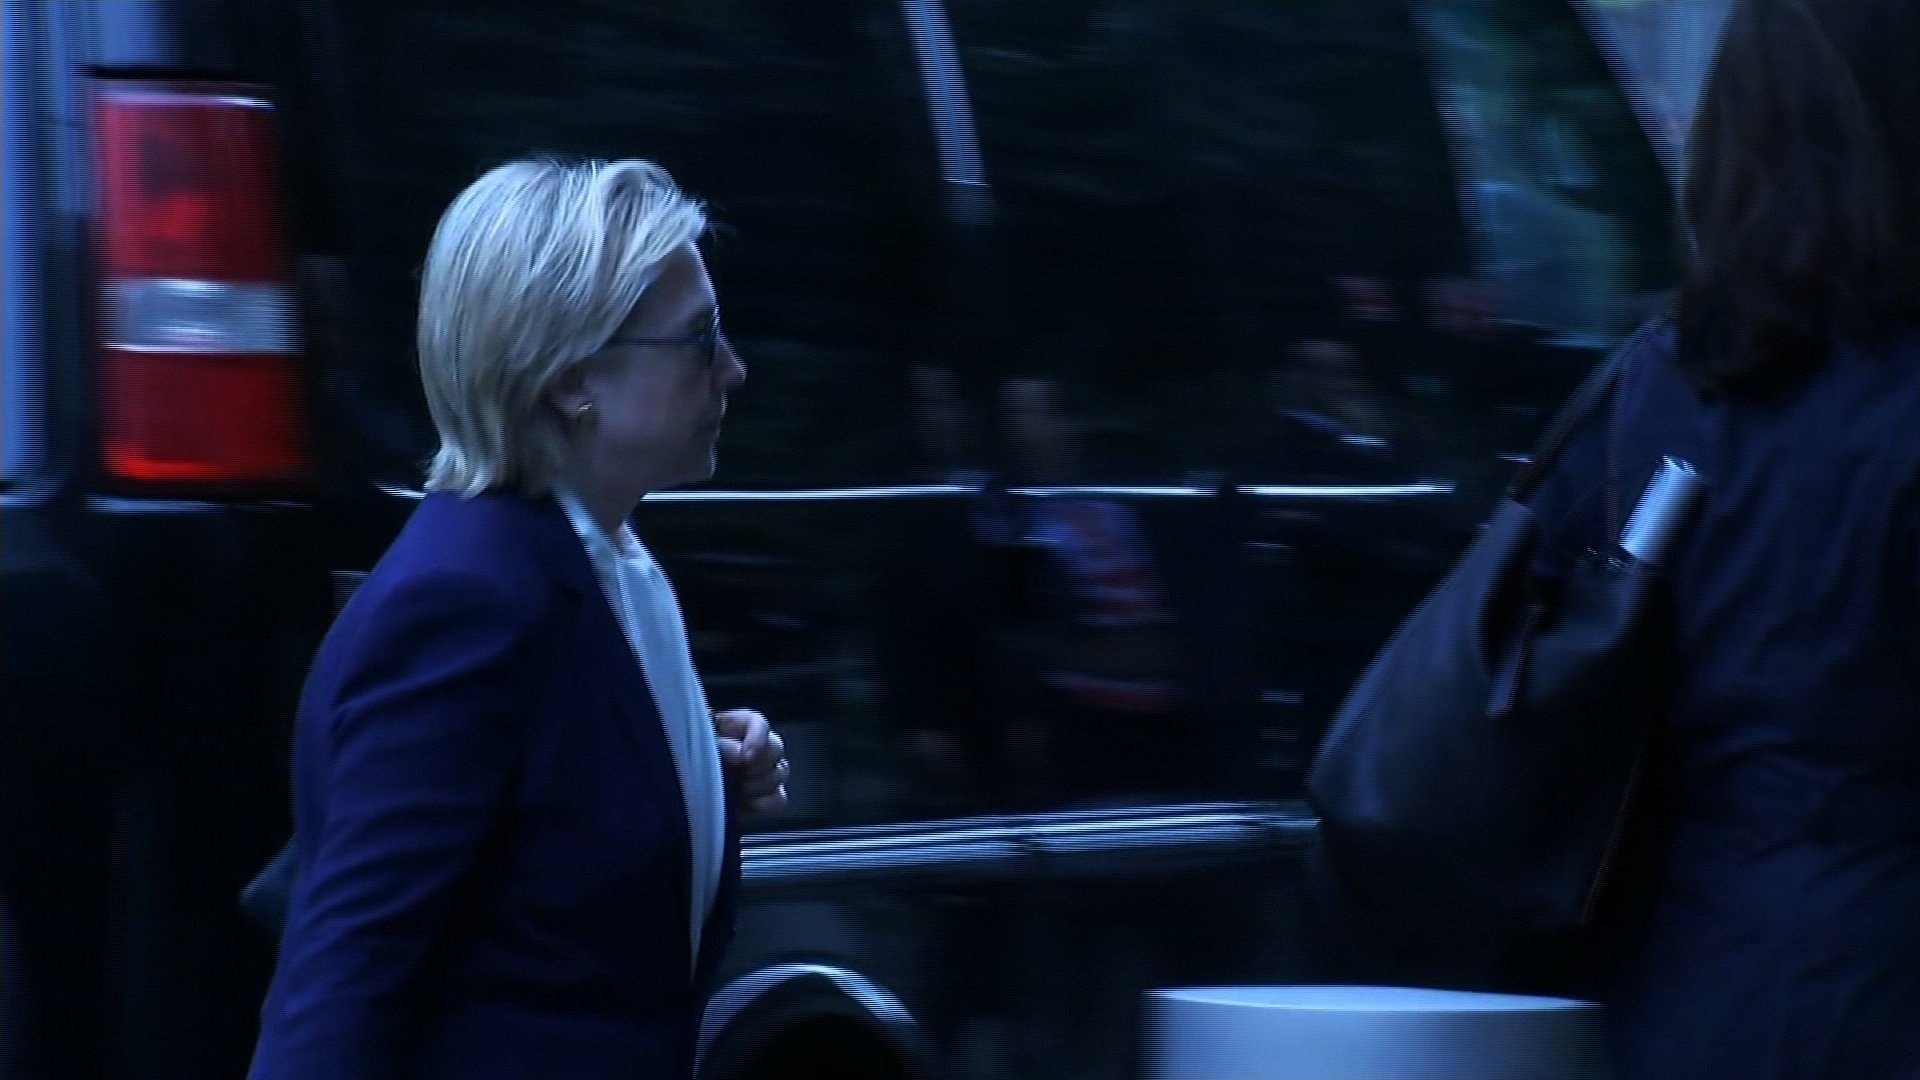 Secret Service Reportedly Broke Protocol to Keep Clinton Out of ER